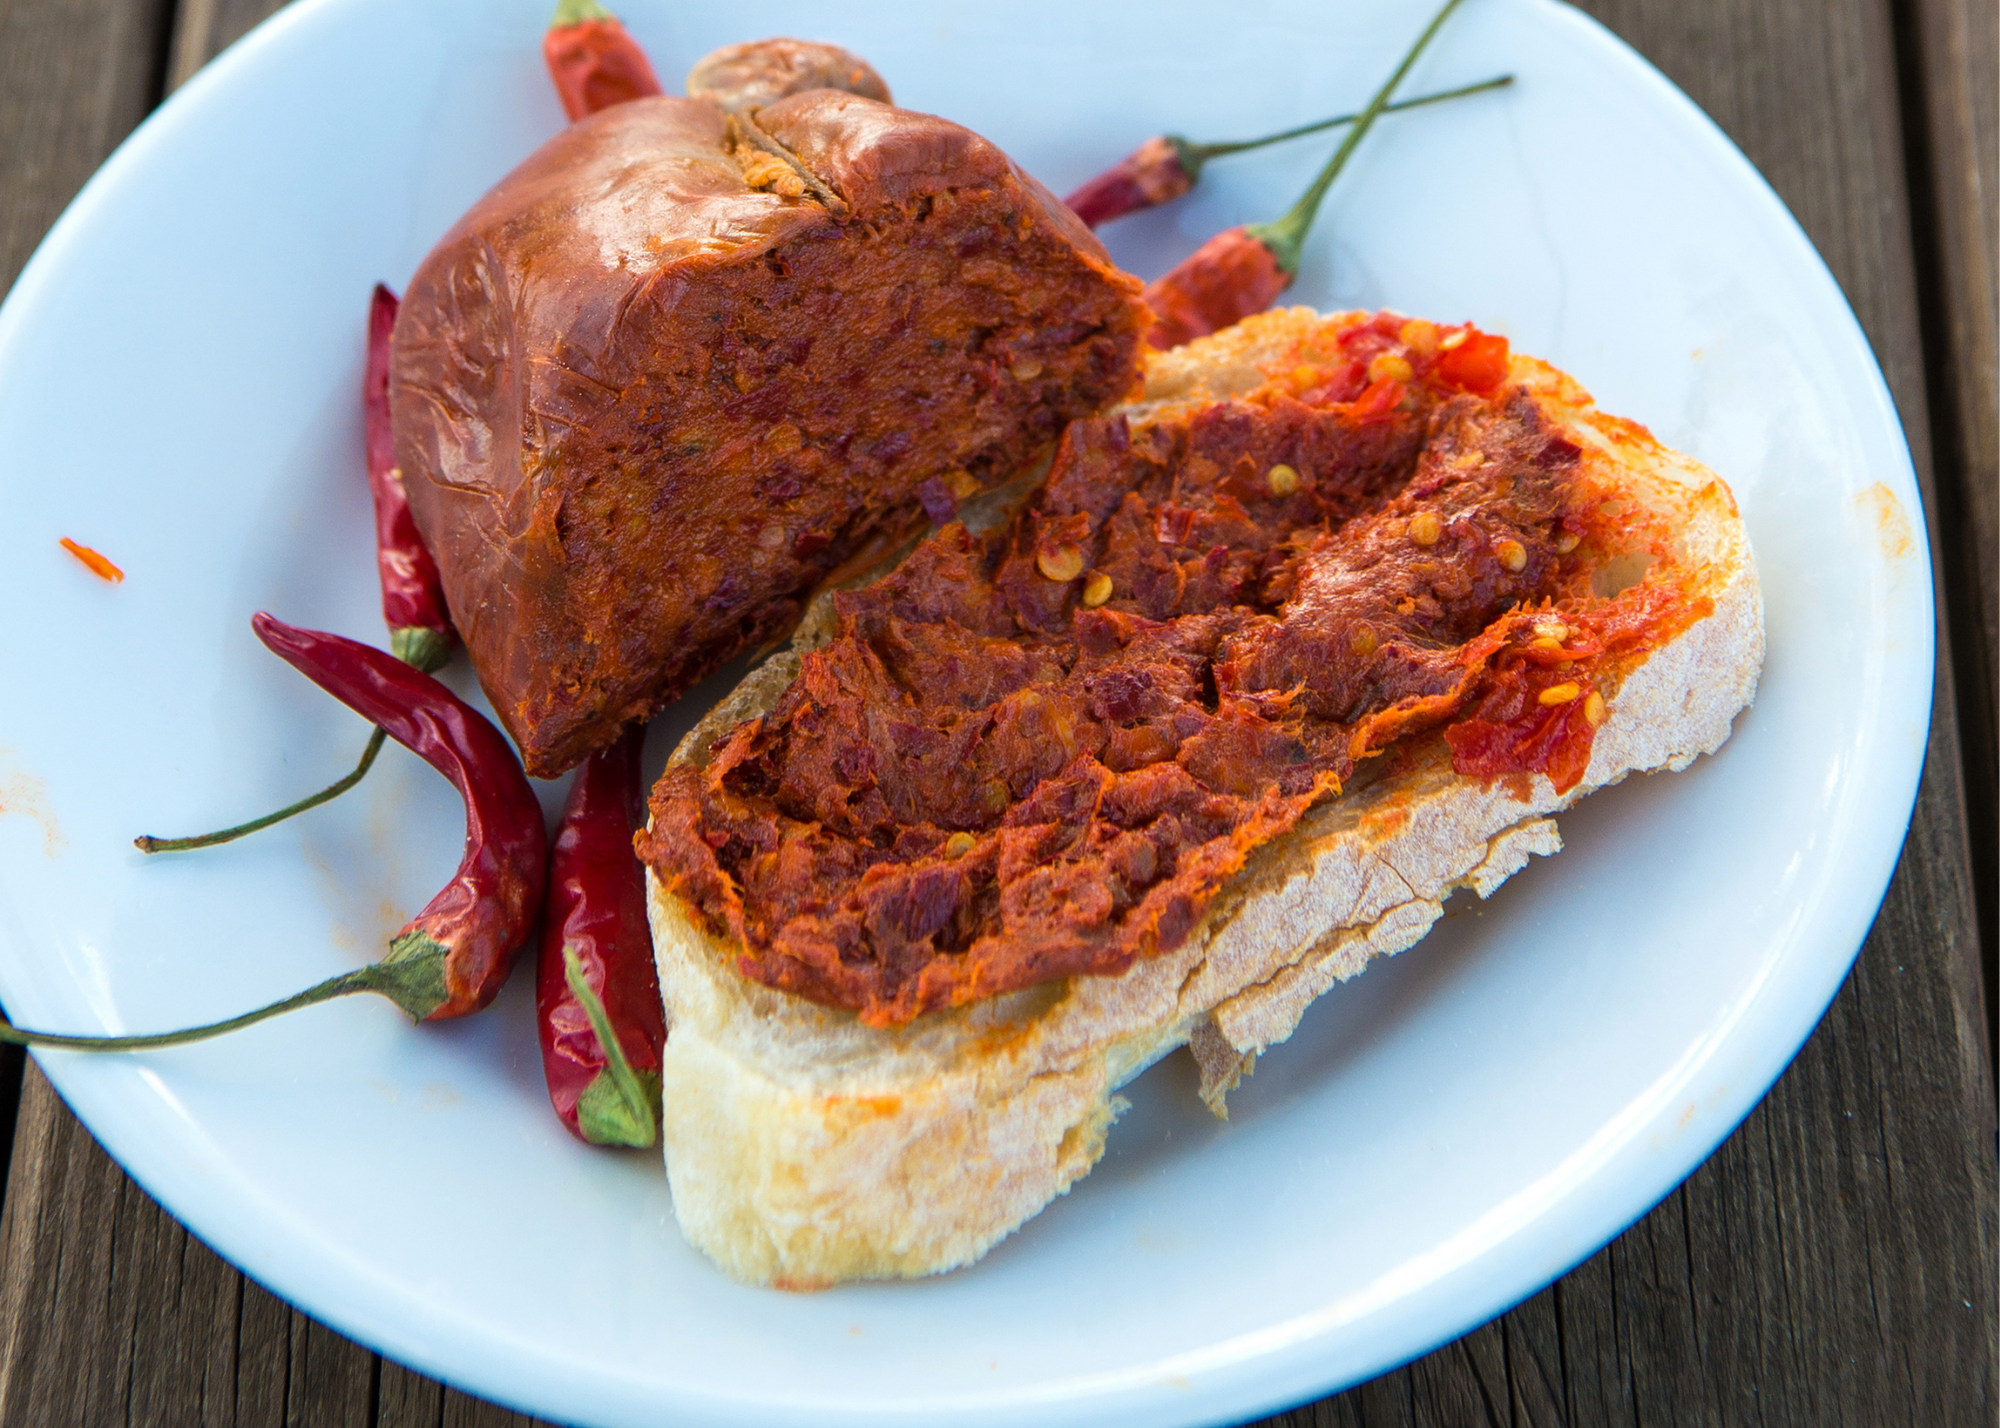 'Nduja: What it is, and how to cook with it